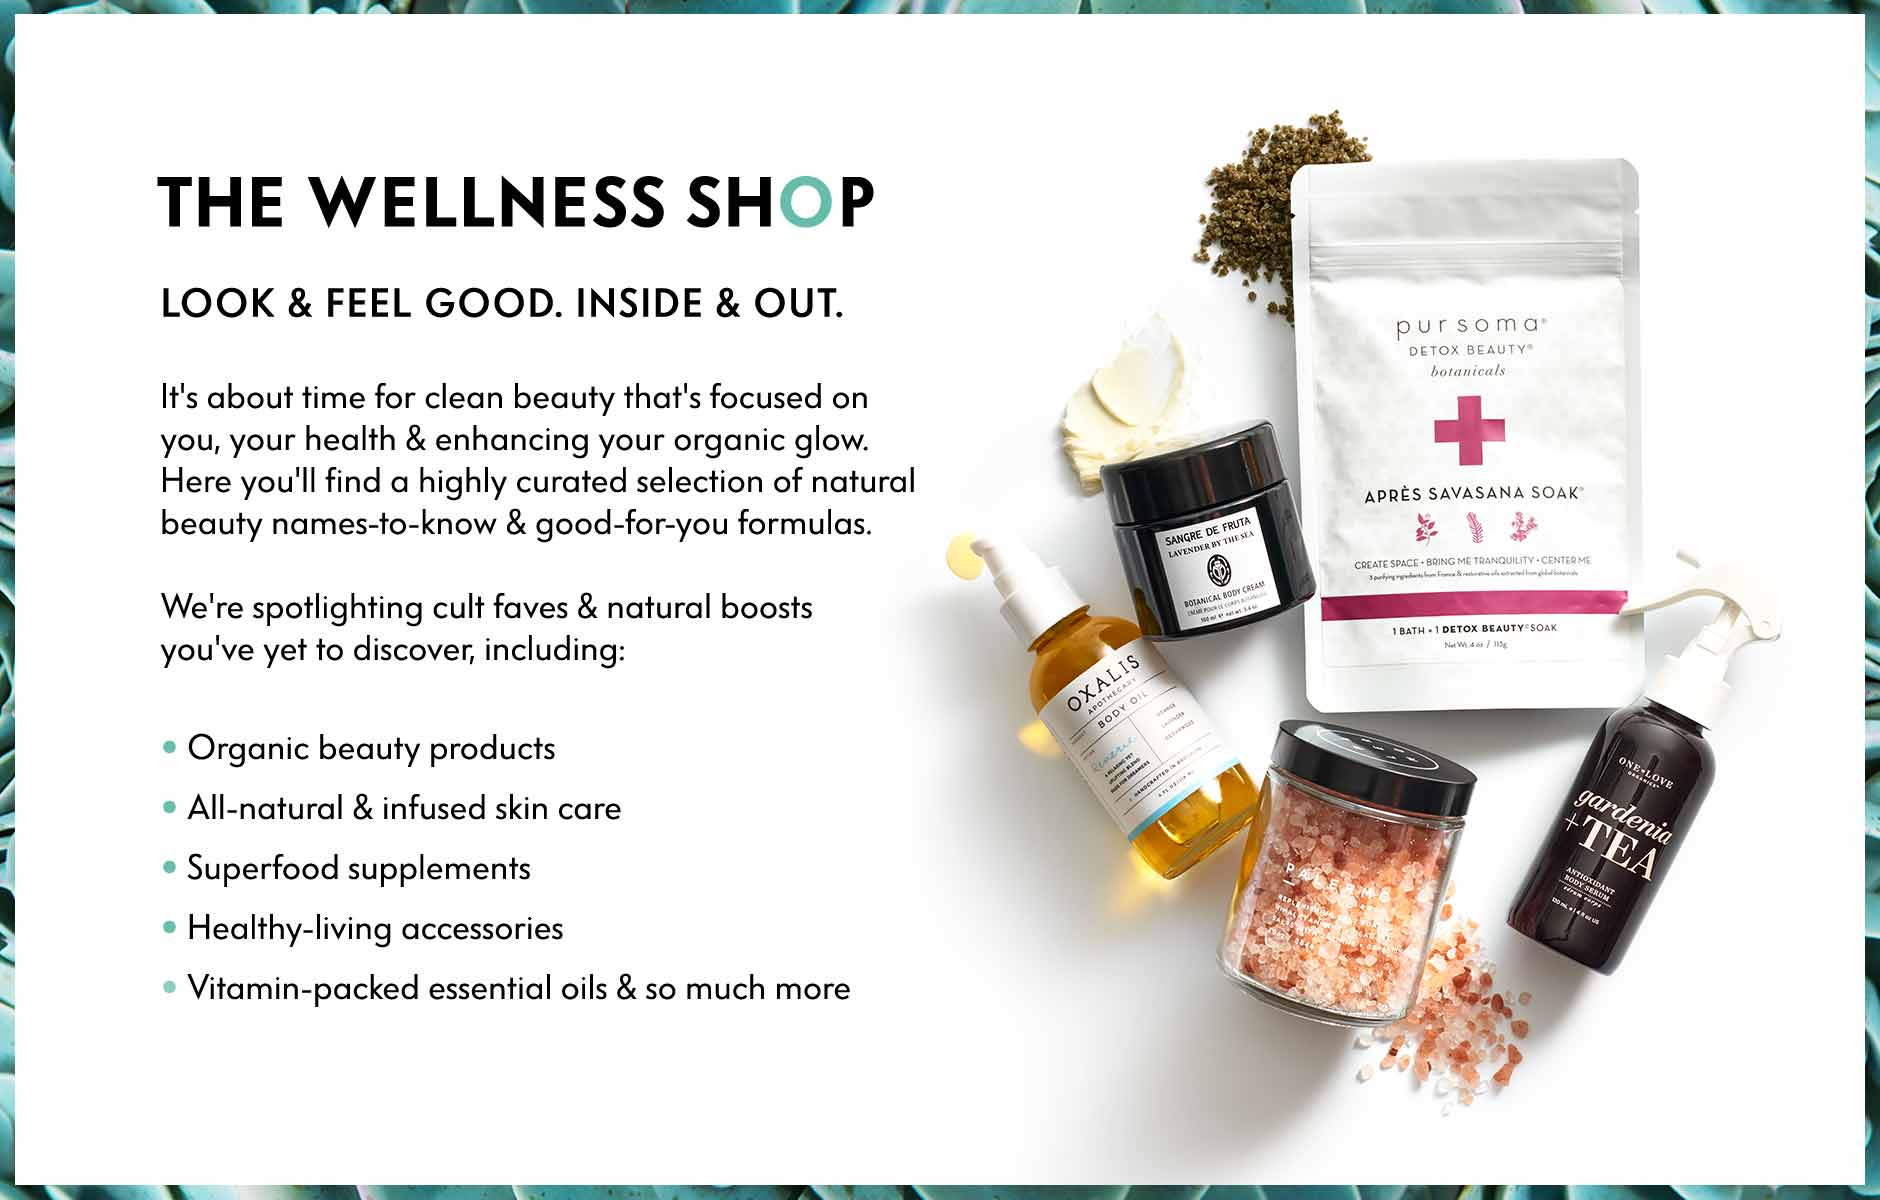 The Wellness Shop - Look & Feel good. Inside & out. Here you'll find a highly curated selection of natural beauty names-to-know & good-for-you formulas.